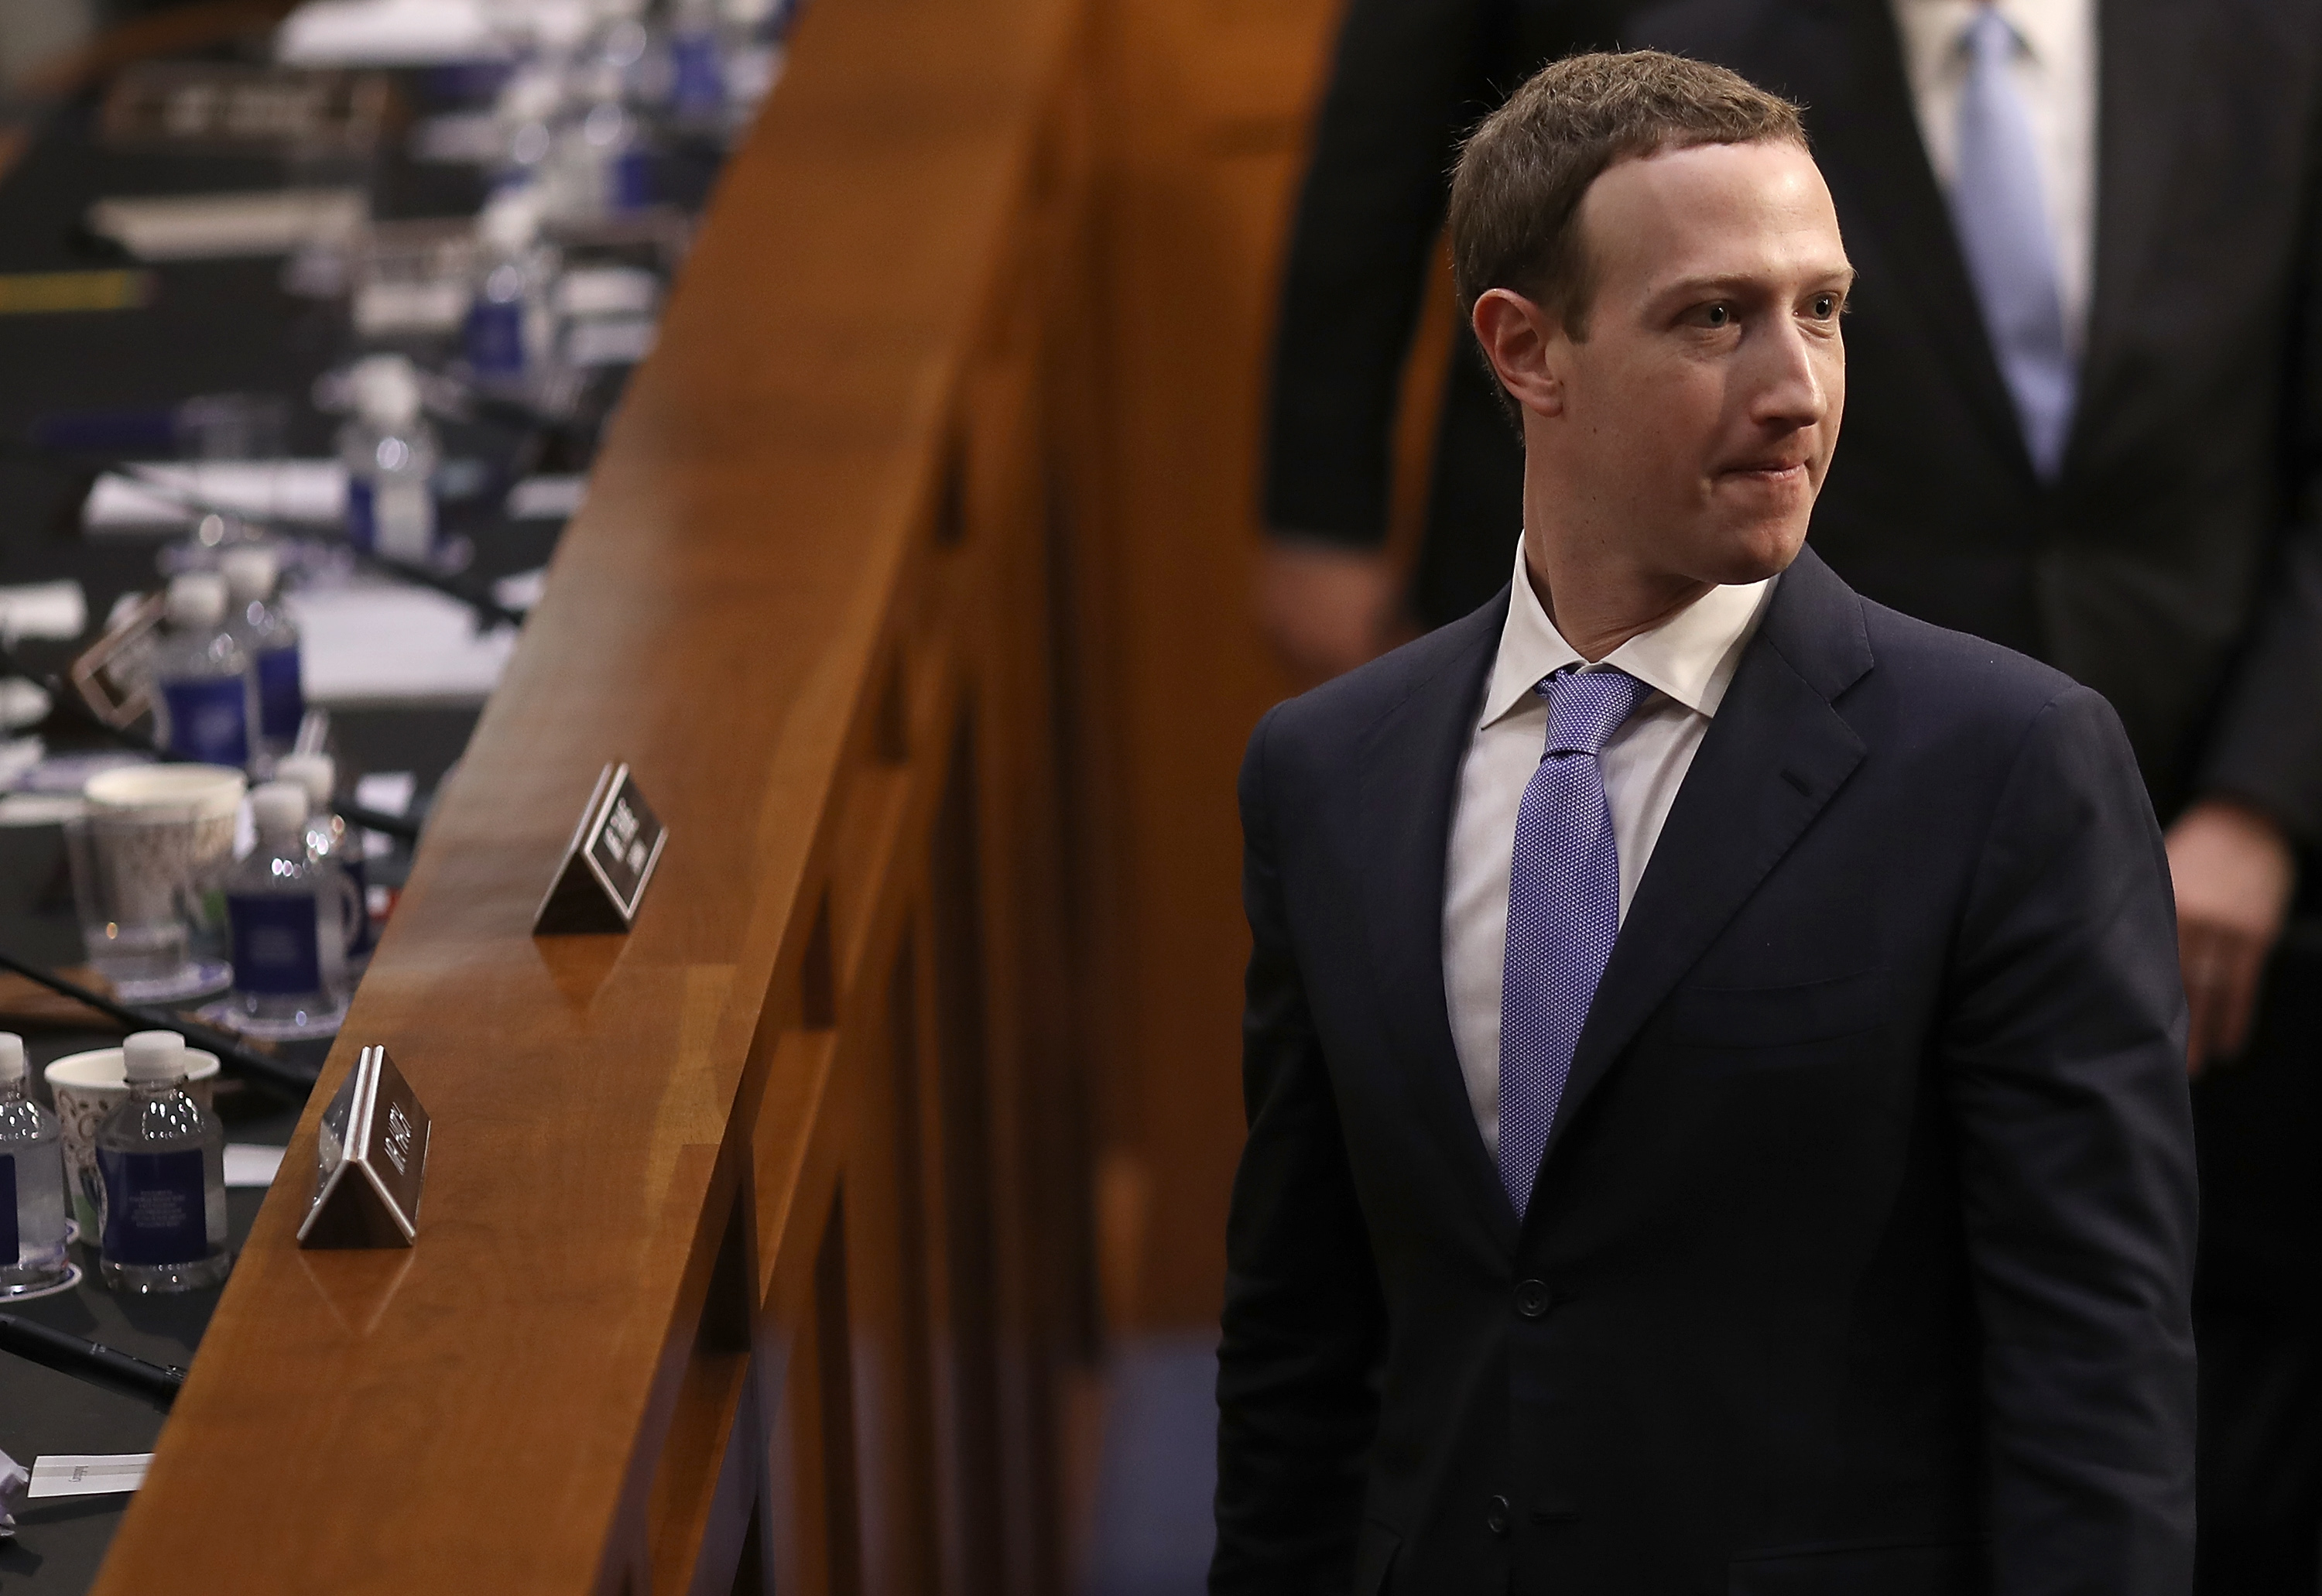 Facebook CEO Mark Zuckerberg departs after testifying on Capitol Hill, April 10, 2018.